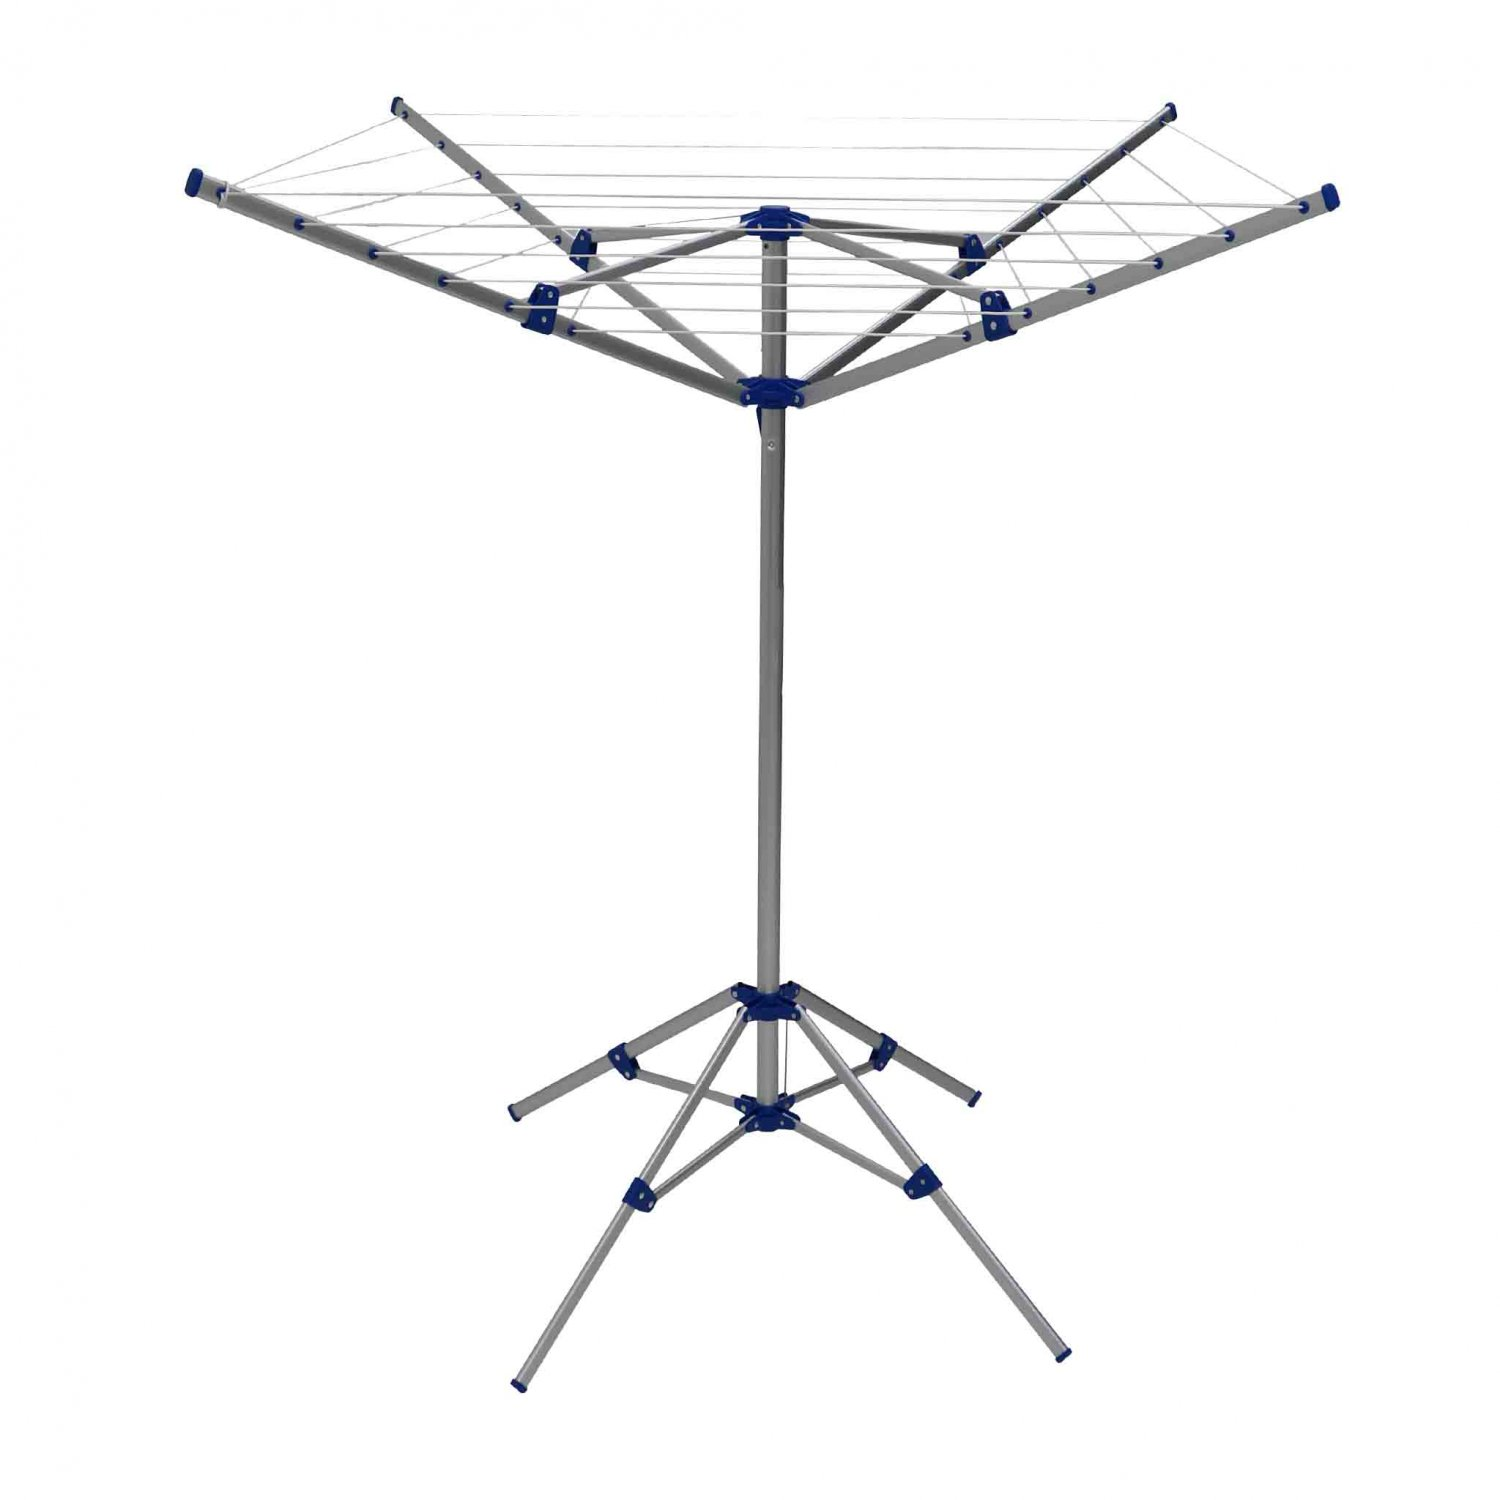 15m 4 arm lightweight aluminium rotary airer portable. Black Bedroom Furniture Sets. Home Design Ideas